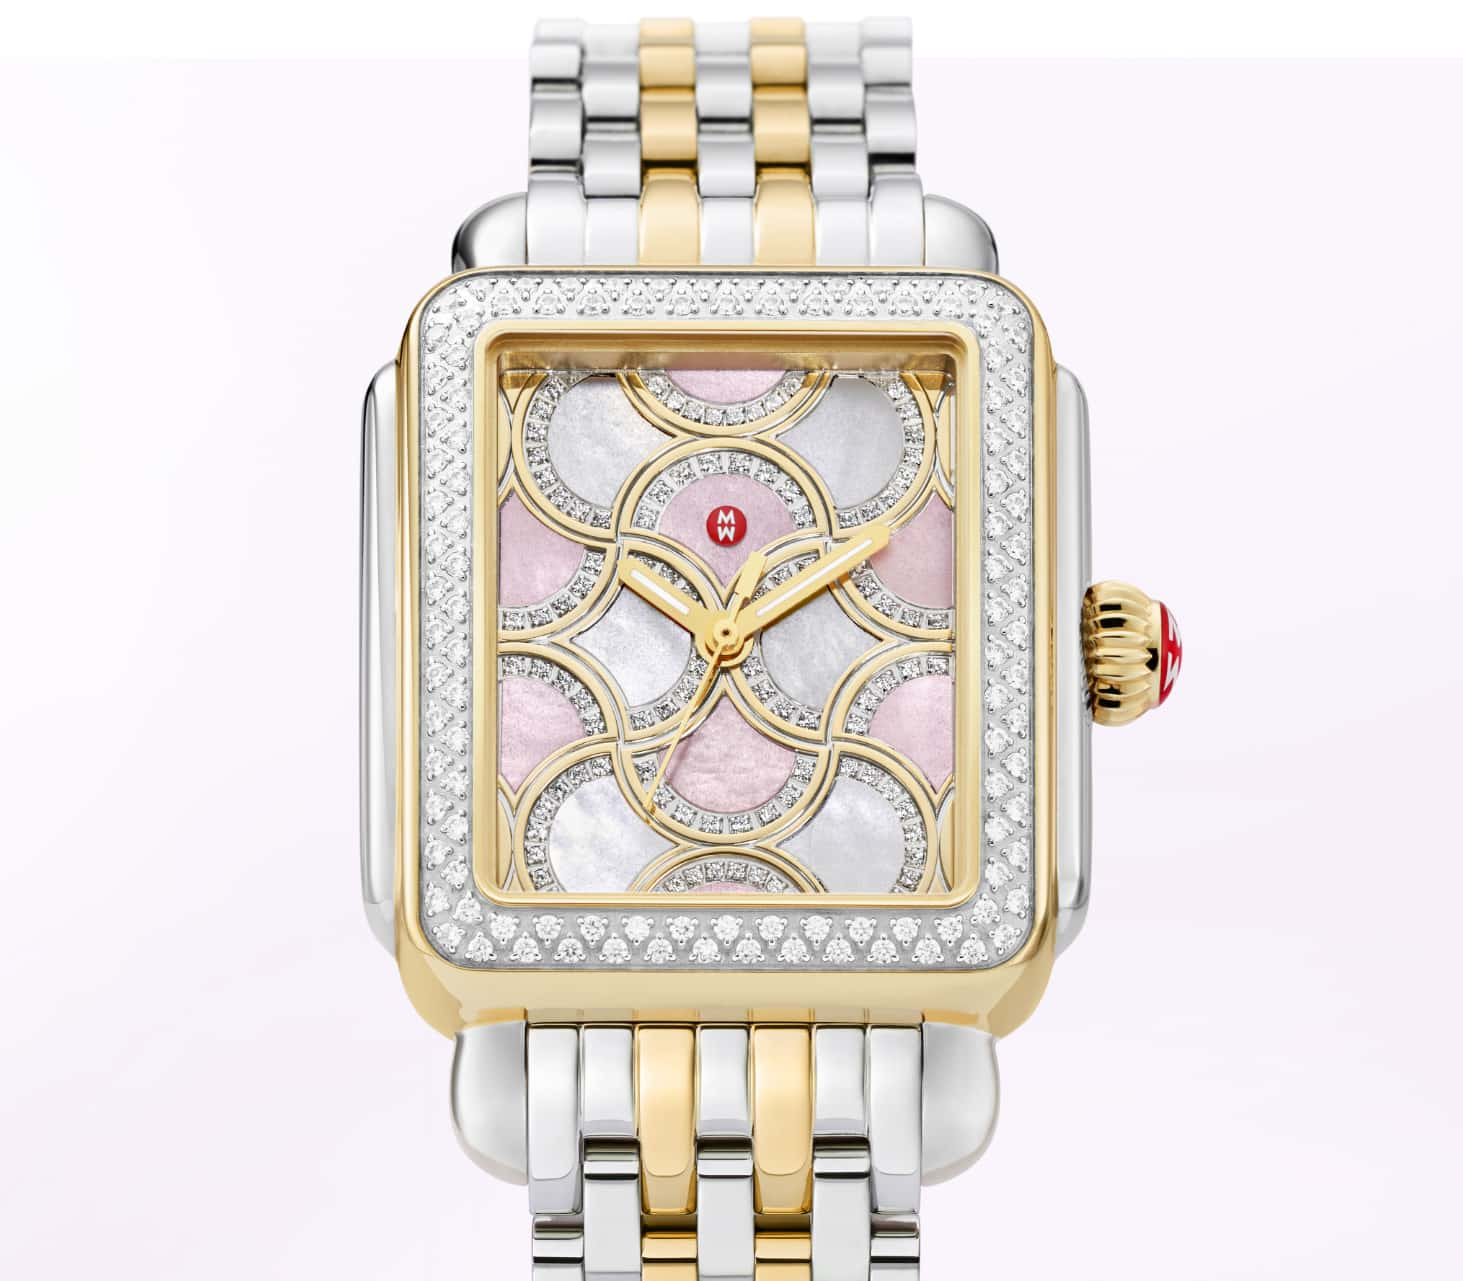 Limited-edition Deco Bella watch featuring lilac and rose mosiac dial.